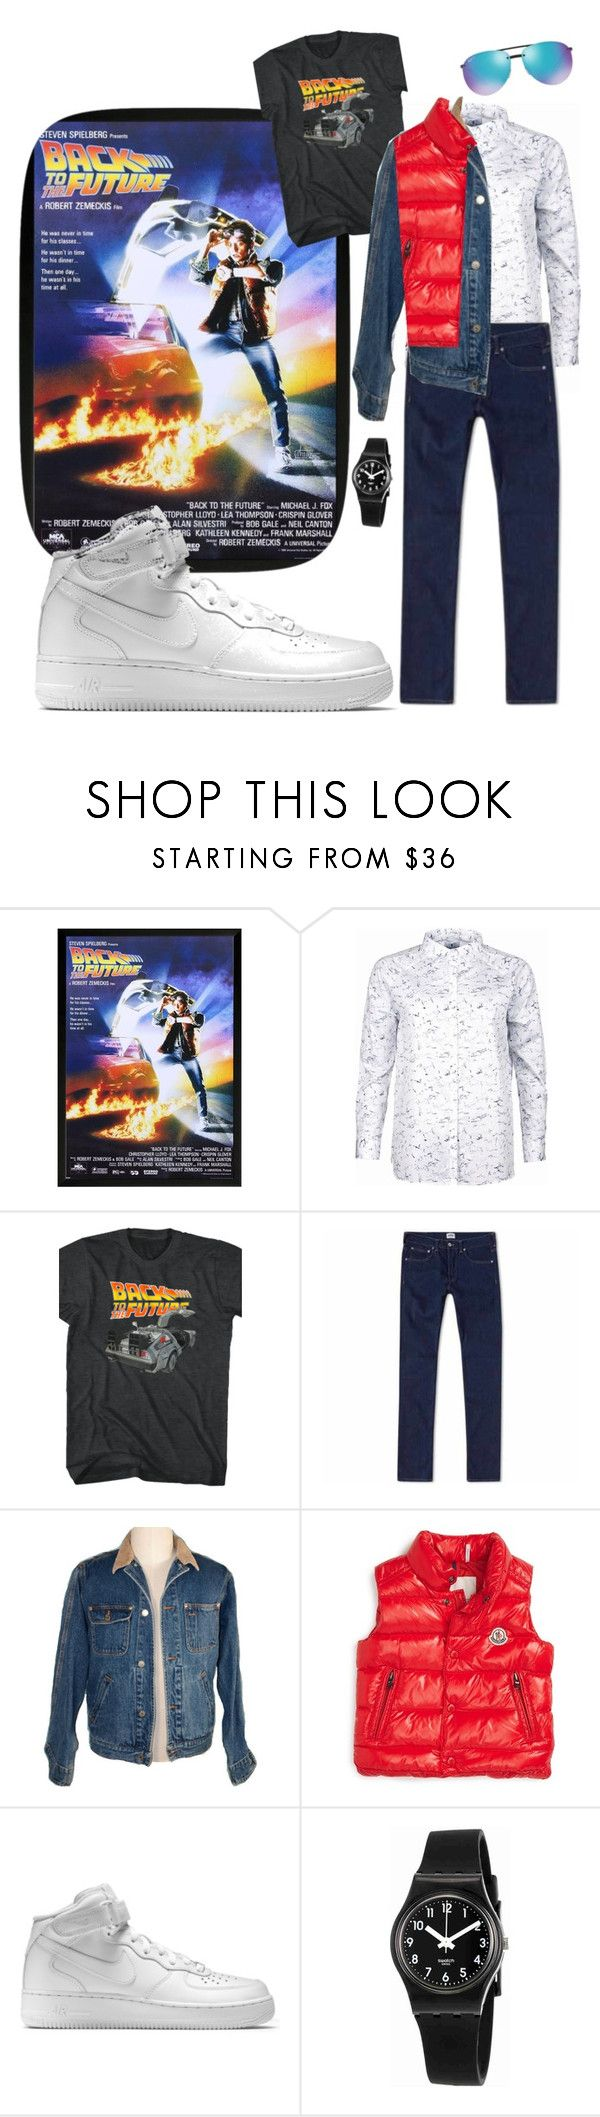 """80s Look 11- Marty McFly"" by jcarkelt on Polyvore featuring Barbour, Edwin, Moncler, NIKE, Swatch, Ray-Ban, 80s and 1980s"